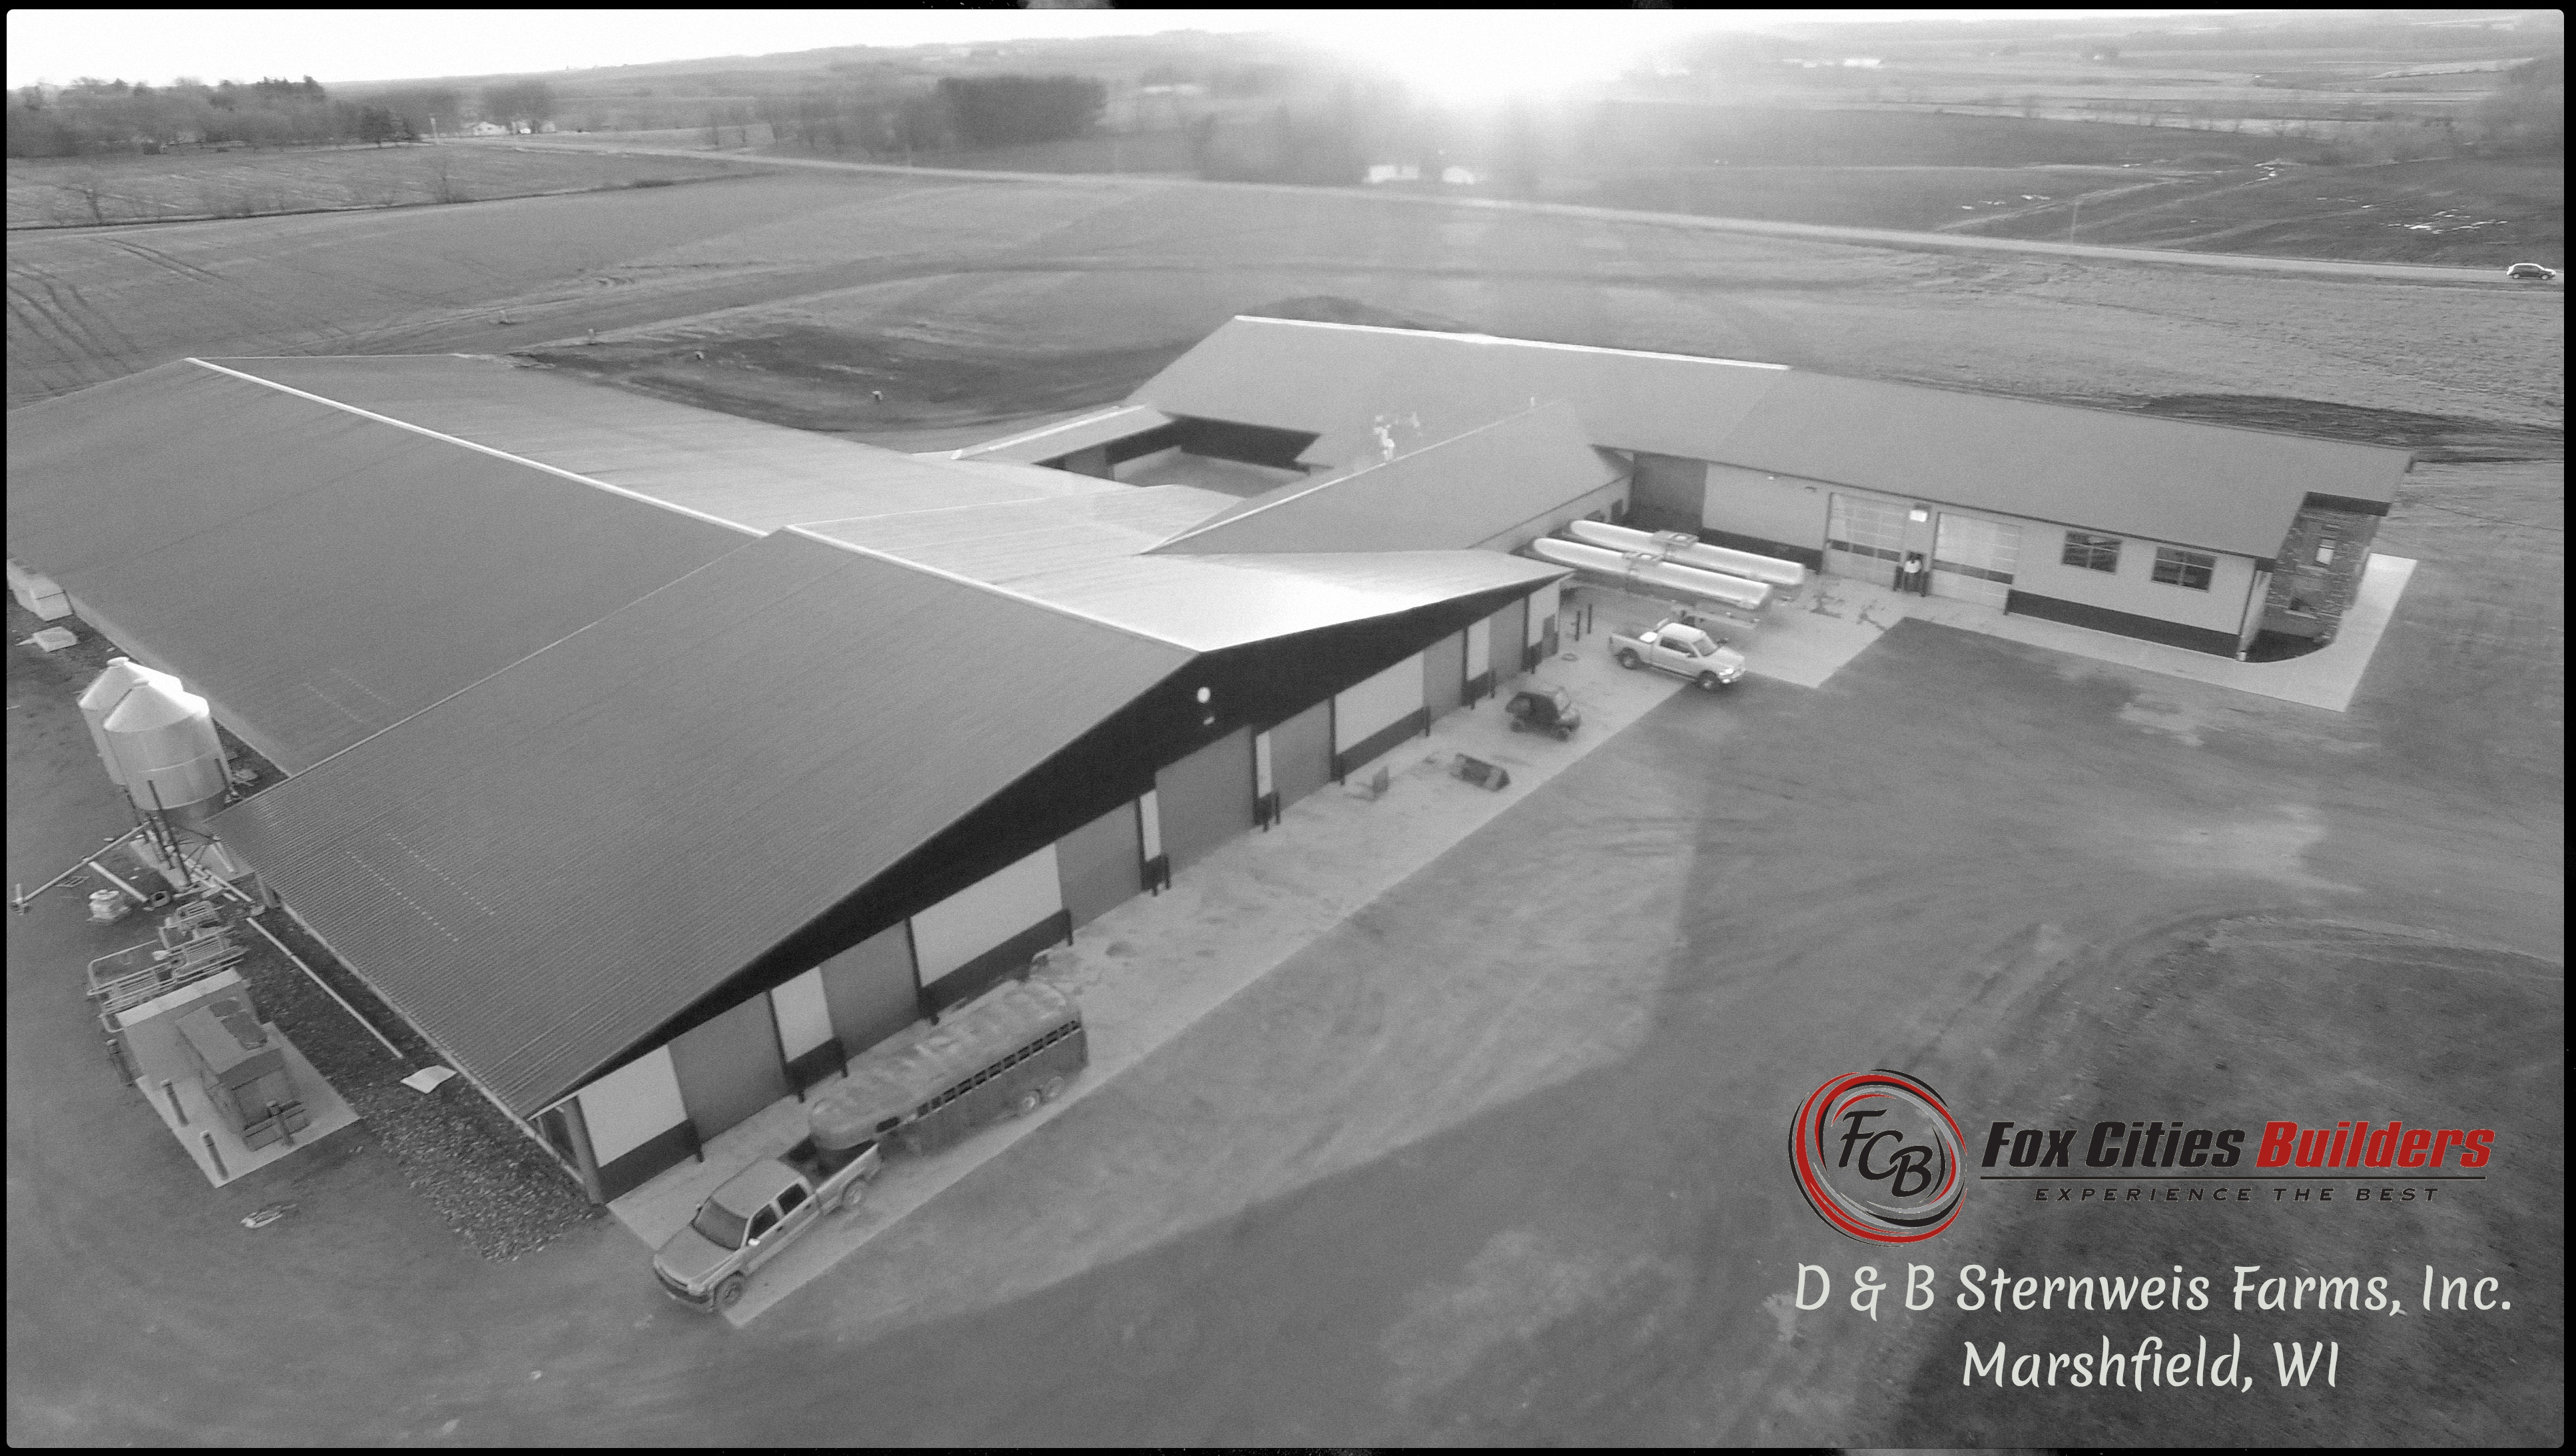 Agricultural Construction: Rotary Milking Parlor & Freestall Barn:  D&B Sternweis Farms, Inc., Marshfield, WI